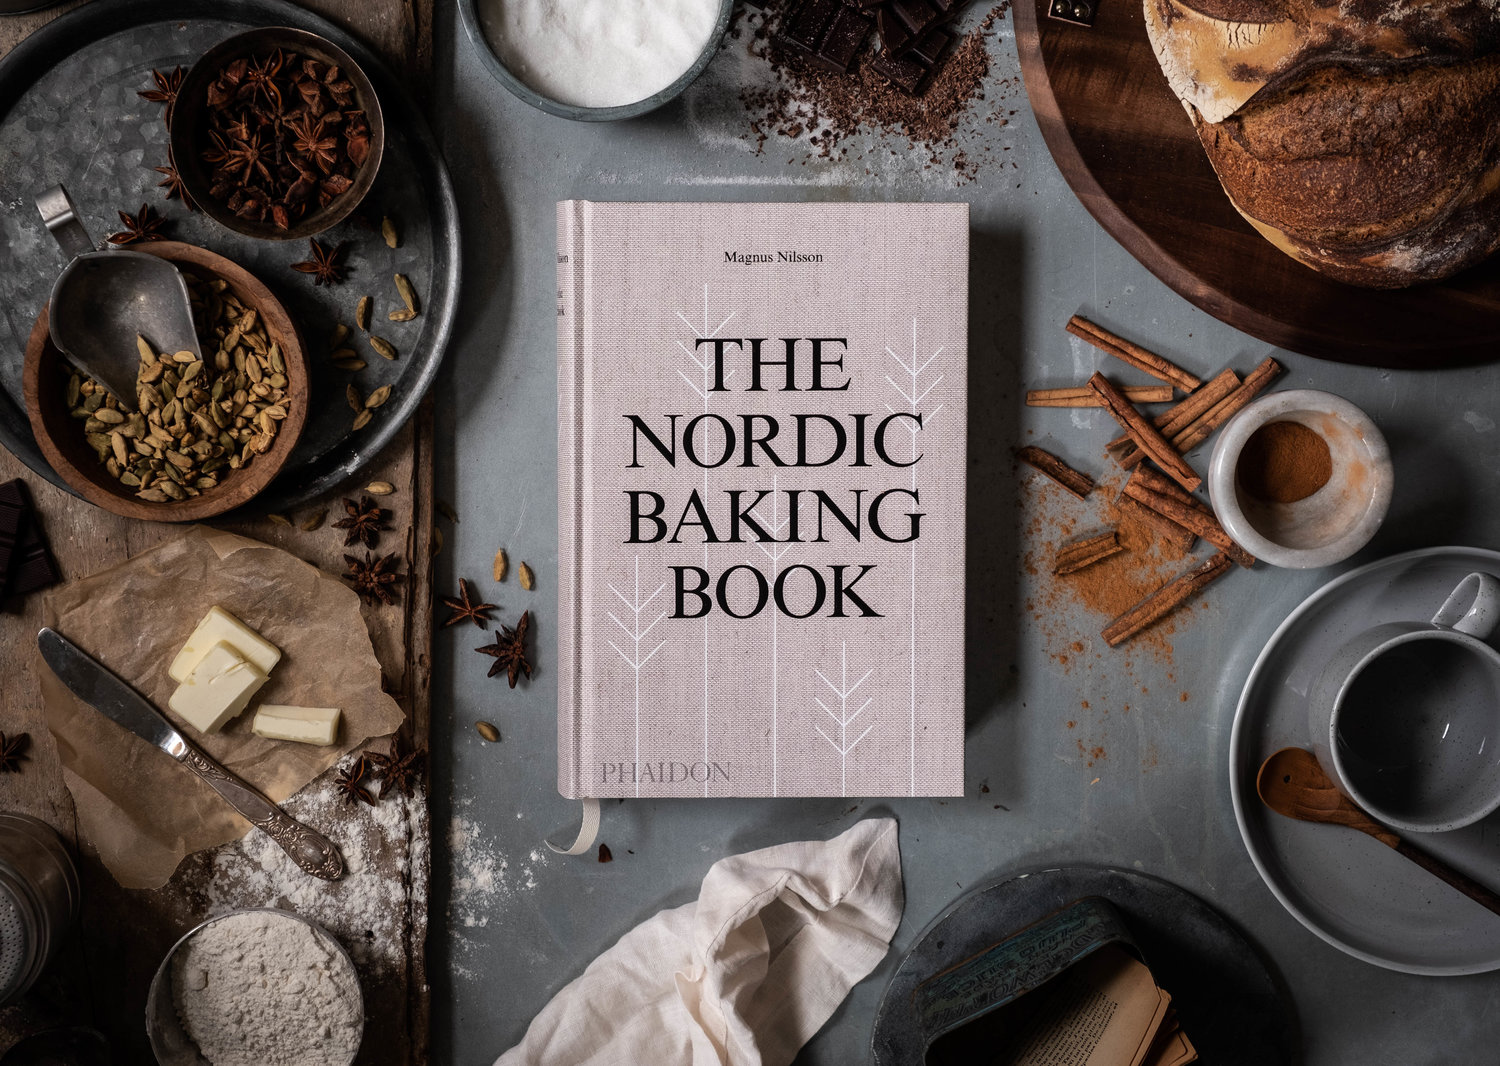 Holiday+Gifting+|+A+Guide+for+the+Global+Foodie+A+Taste+of+Scandinavia The Nordic Baking Book.jpeg